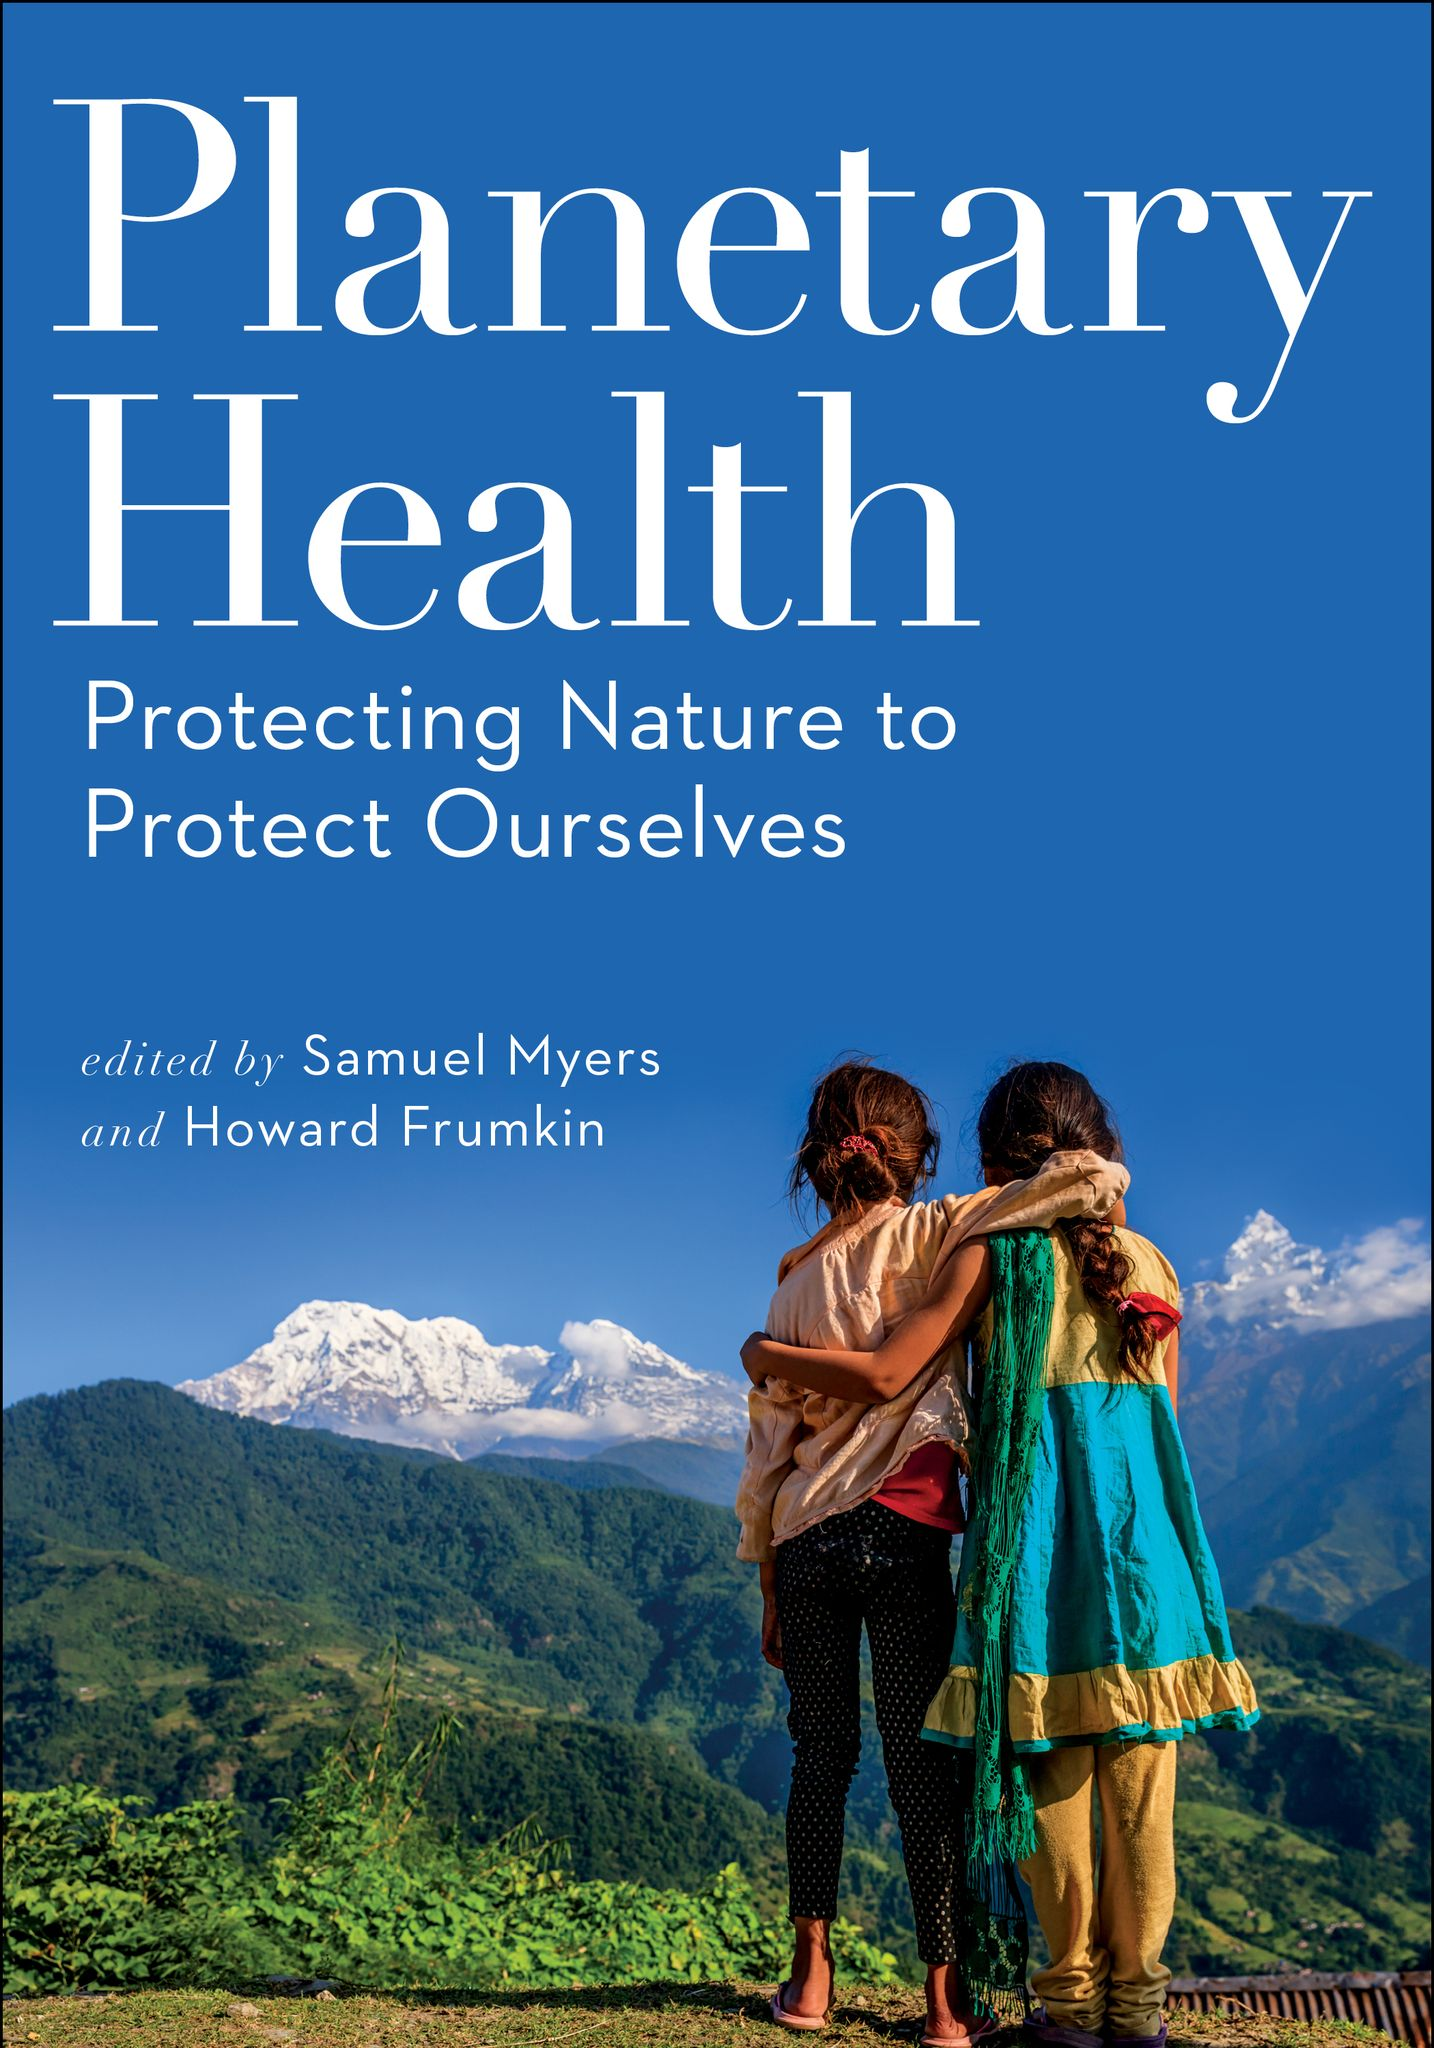 Book cover, two children embrace and look at mountains